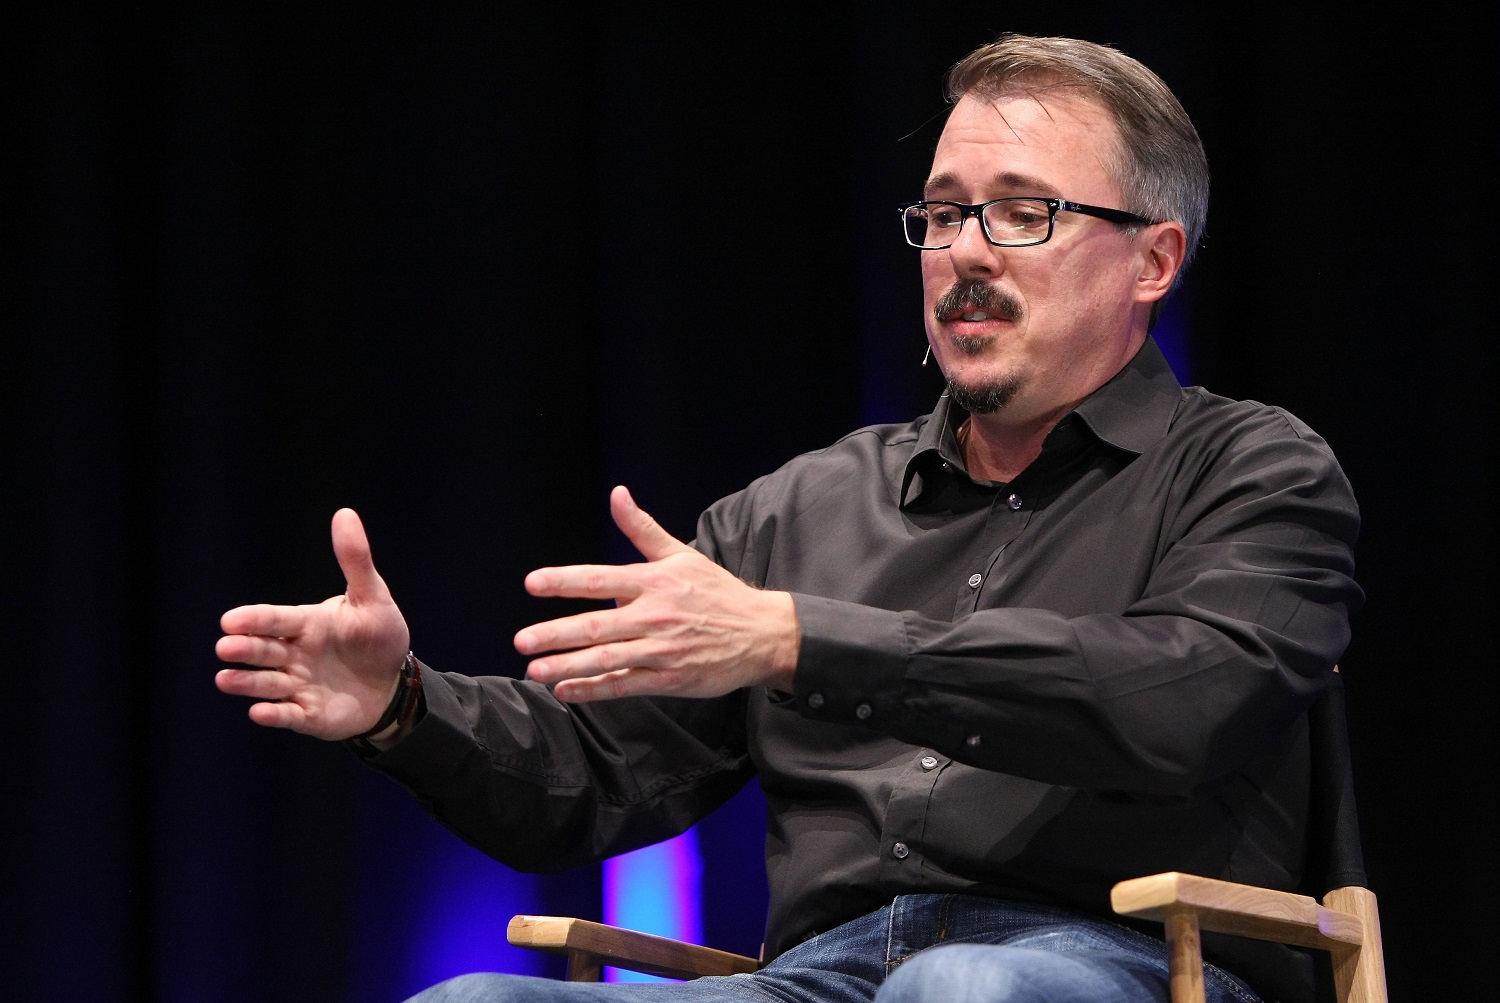 Vince Gilligan worked on The Lone Gunmen